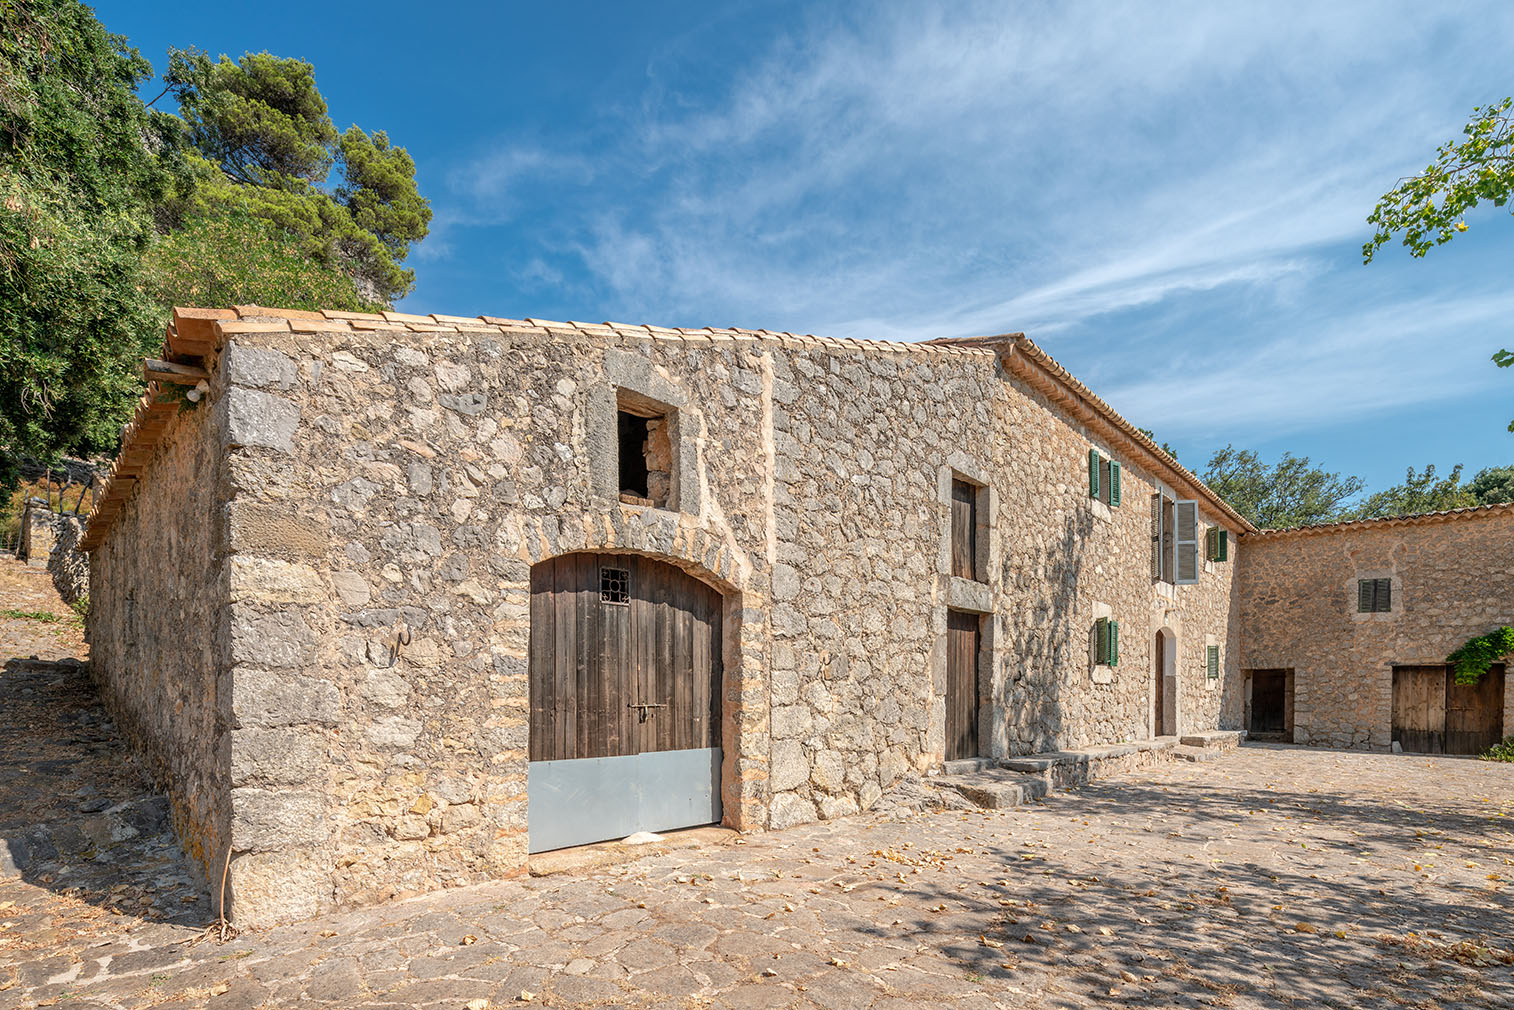 Mountainside Mallorcan finca with 550 acres of olive groves and acorn forest hits the market